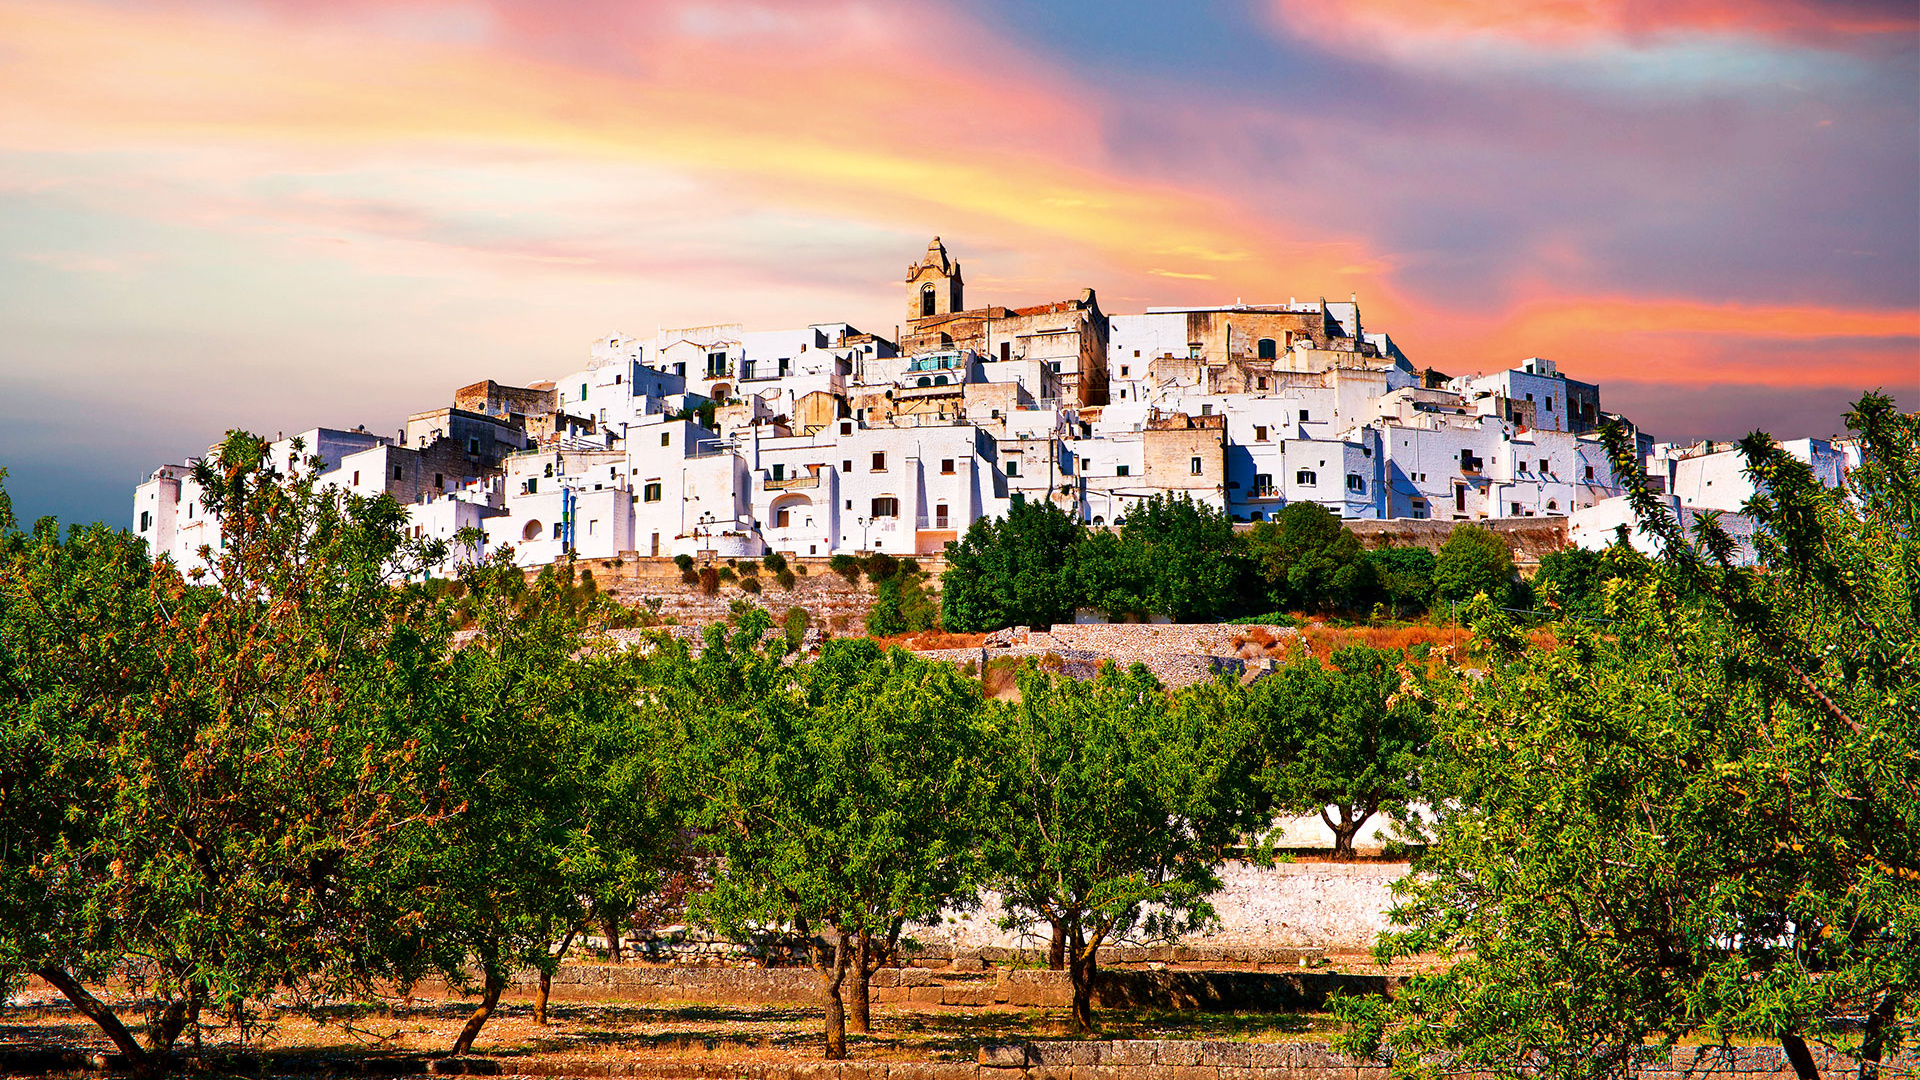 Medieval fortified town of Ostuni at sunset, Puglia, Italy